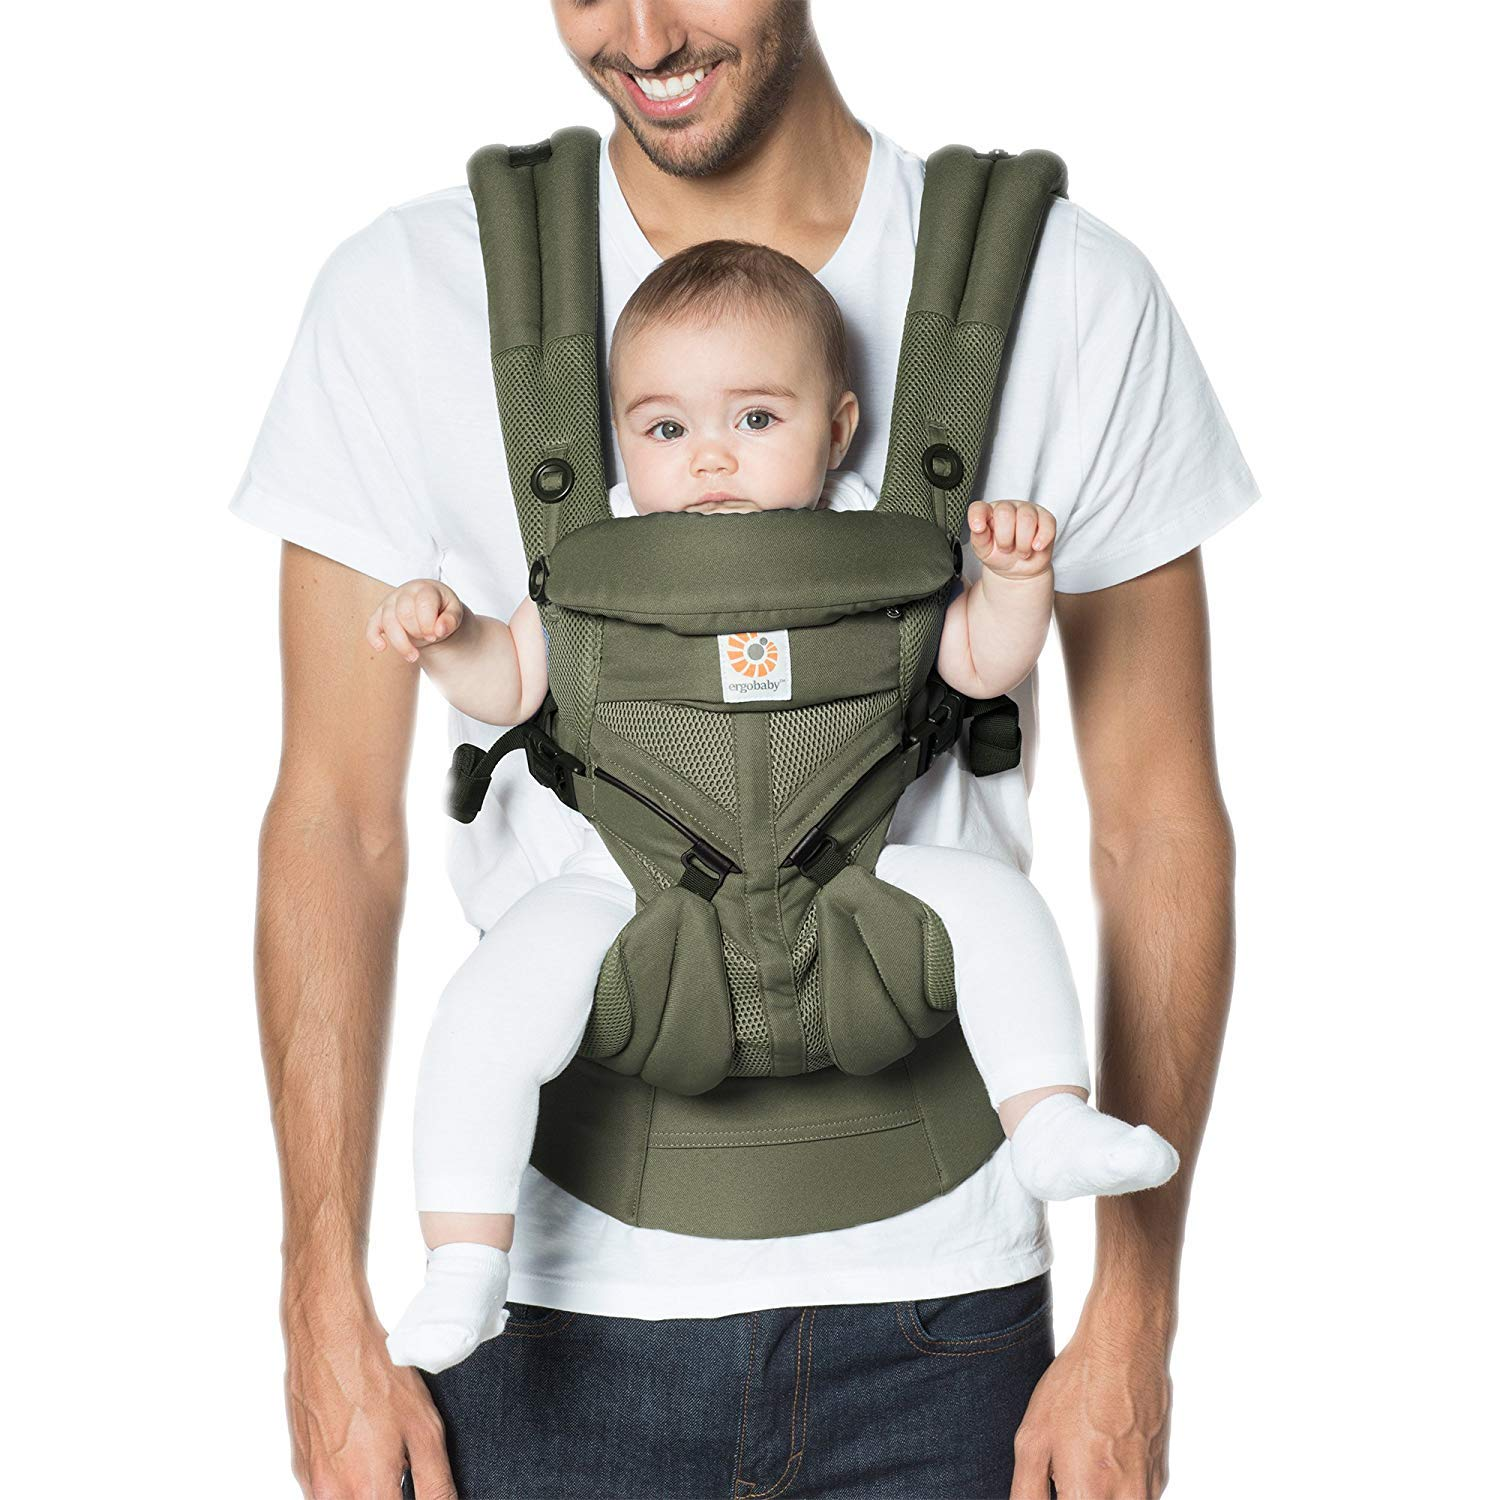 Ergobaby Omni 360 All-Position Baby Carrier for Newborn to Toddler with Lumbar Support & Cool Air Mesh (7-45 Lb), Khaki Green